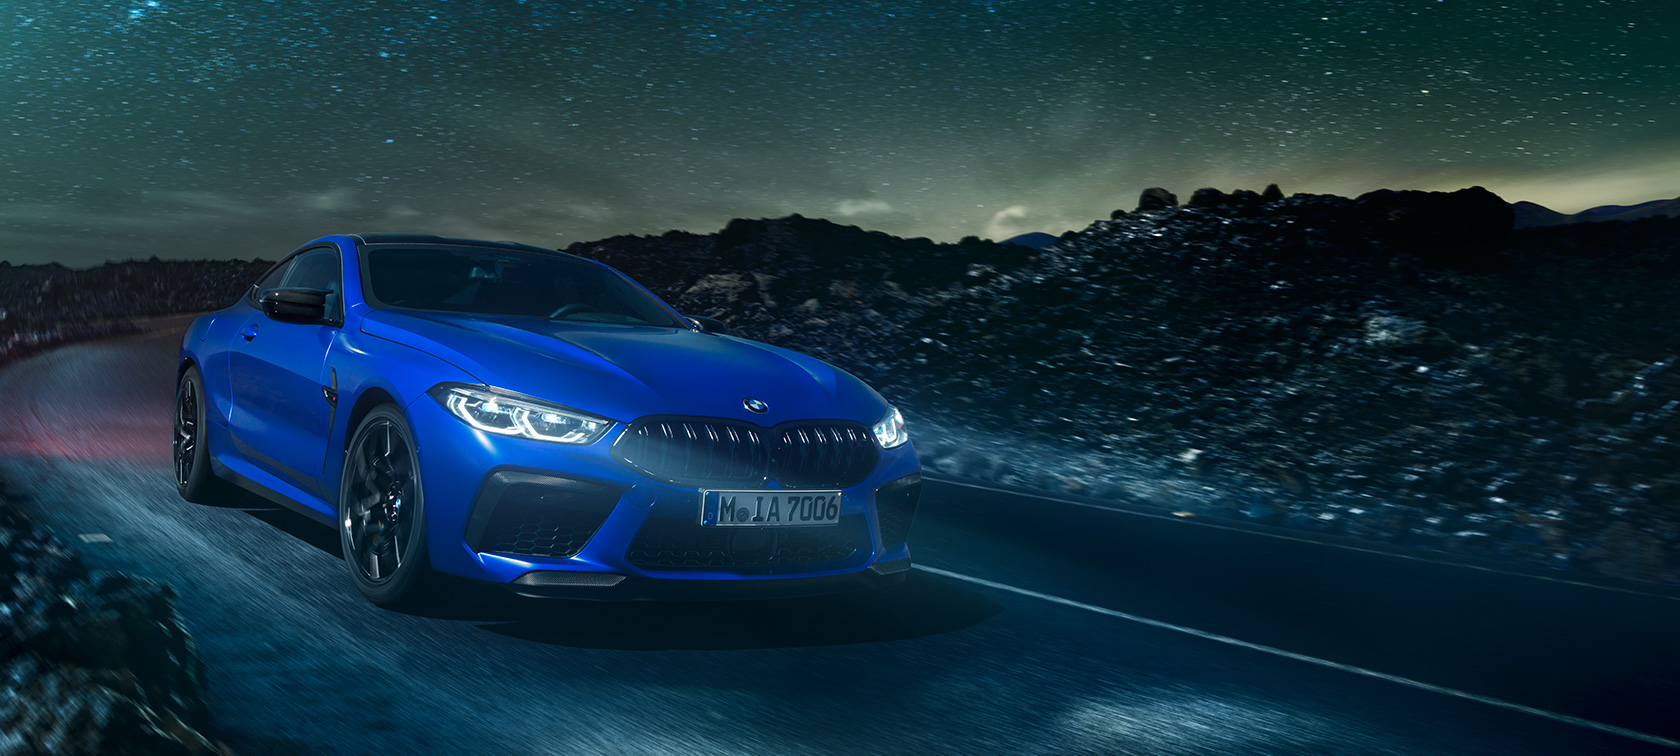 The first-ever BMW M8 Competition Coupé in Marina Bay Blue metallic, three-quarter front view.